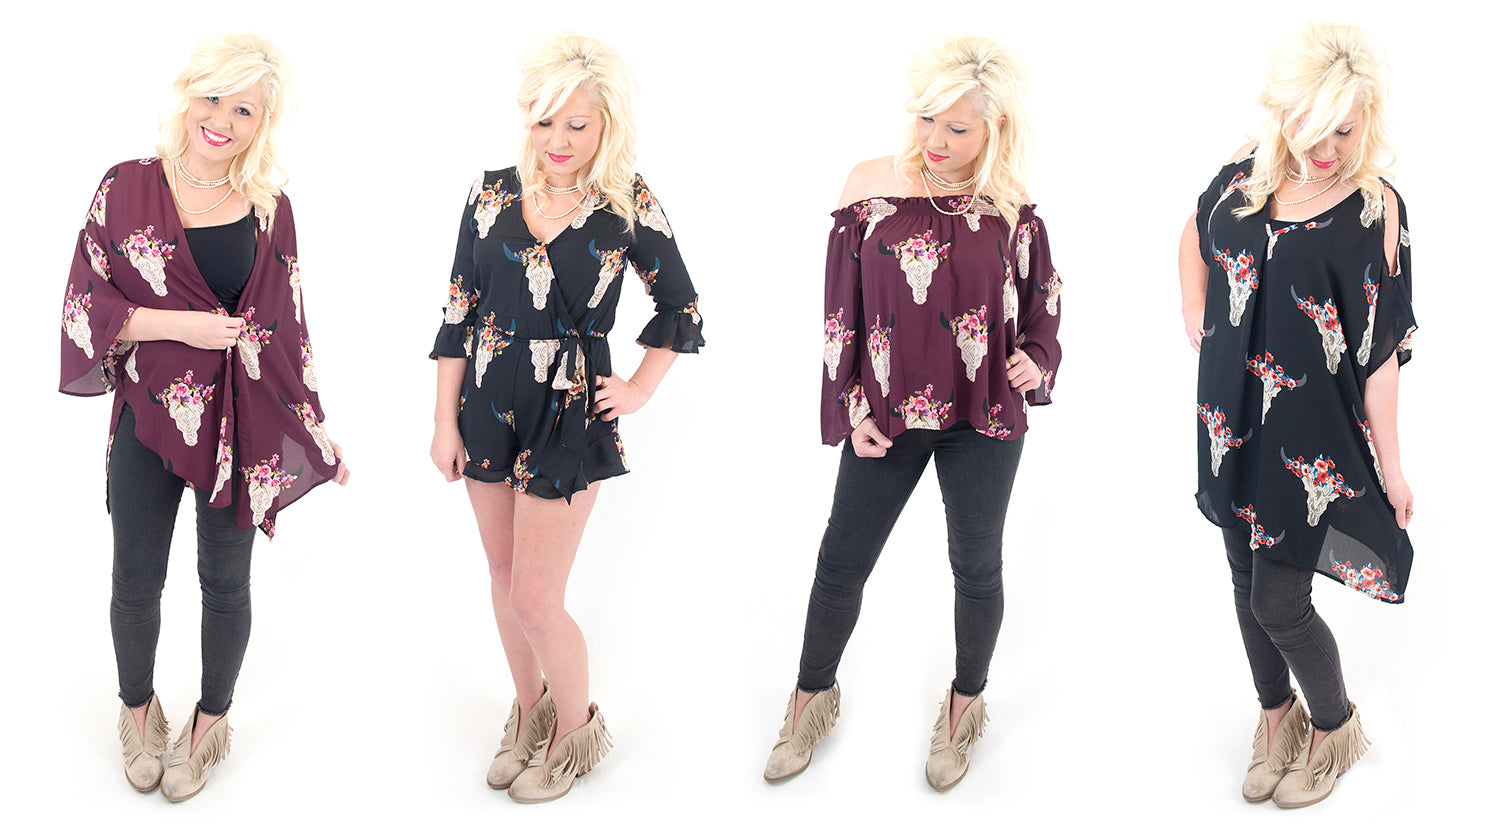 Lauren's favorite fall trend is bullhead floral print romper, kimono, off the shoulder top and tunic